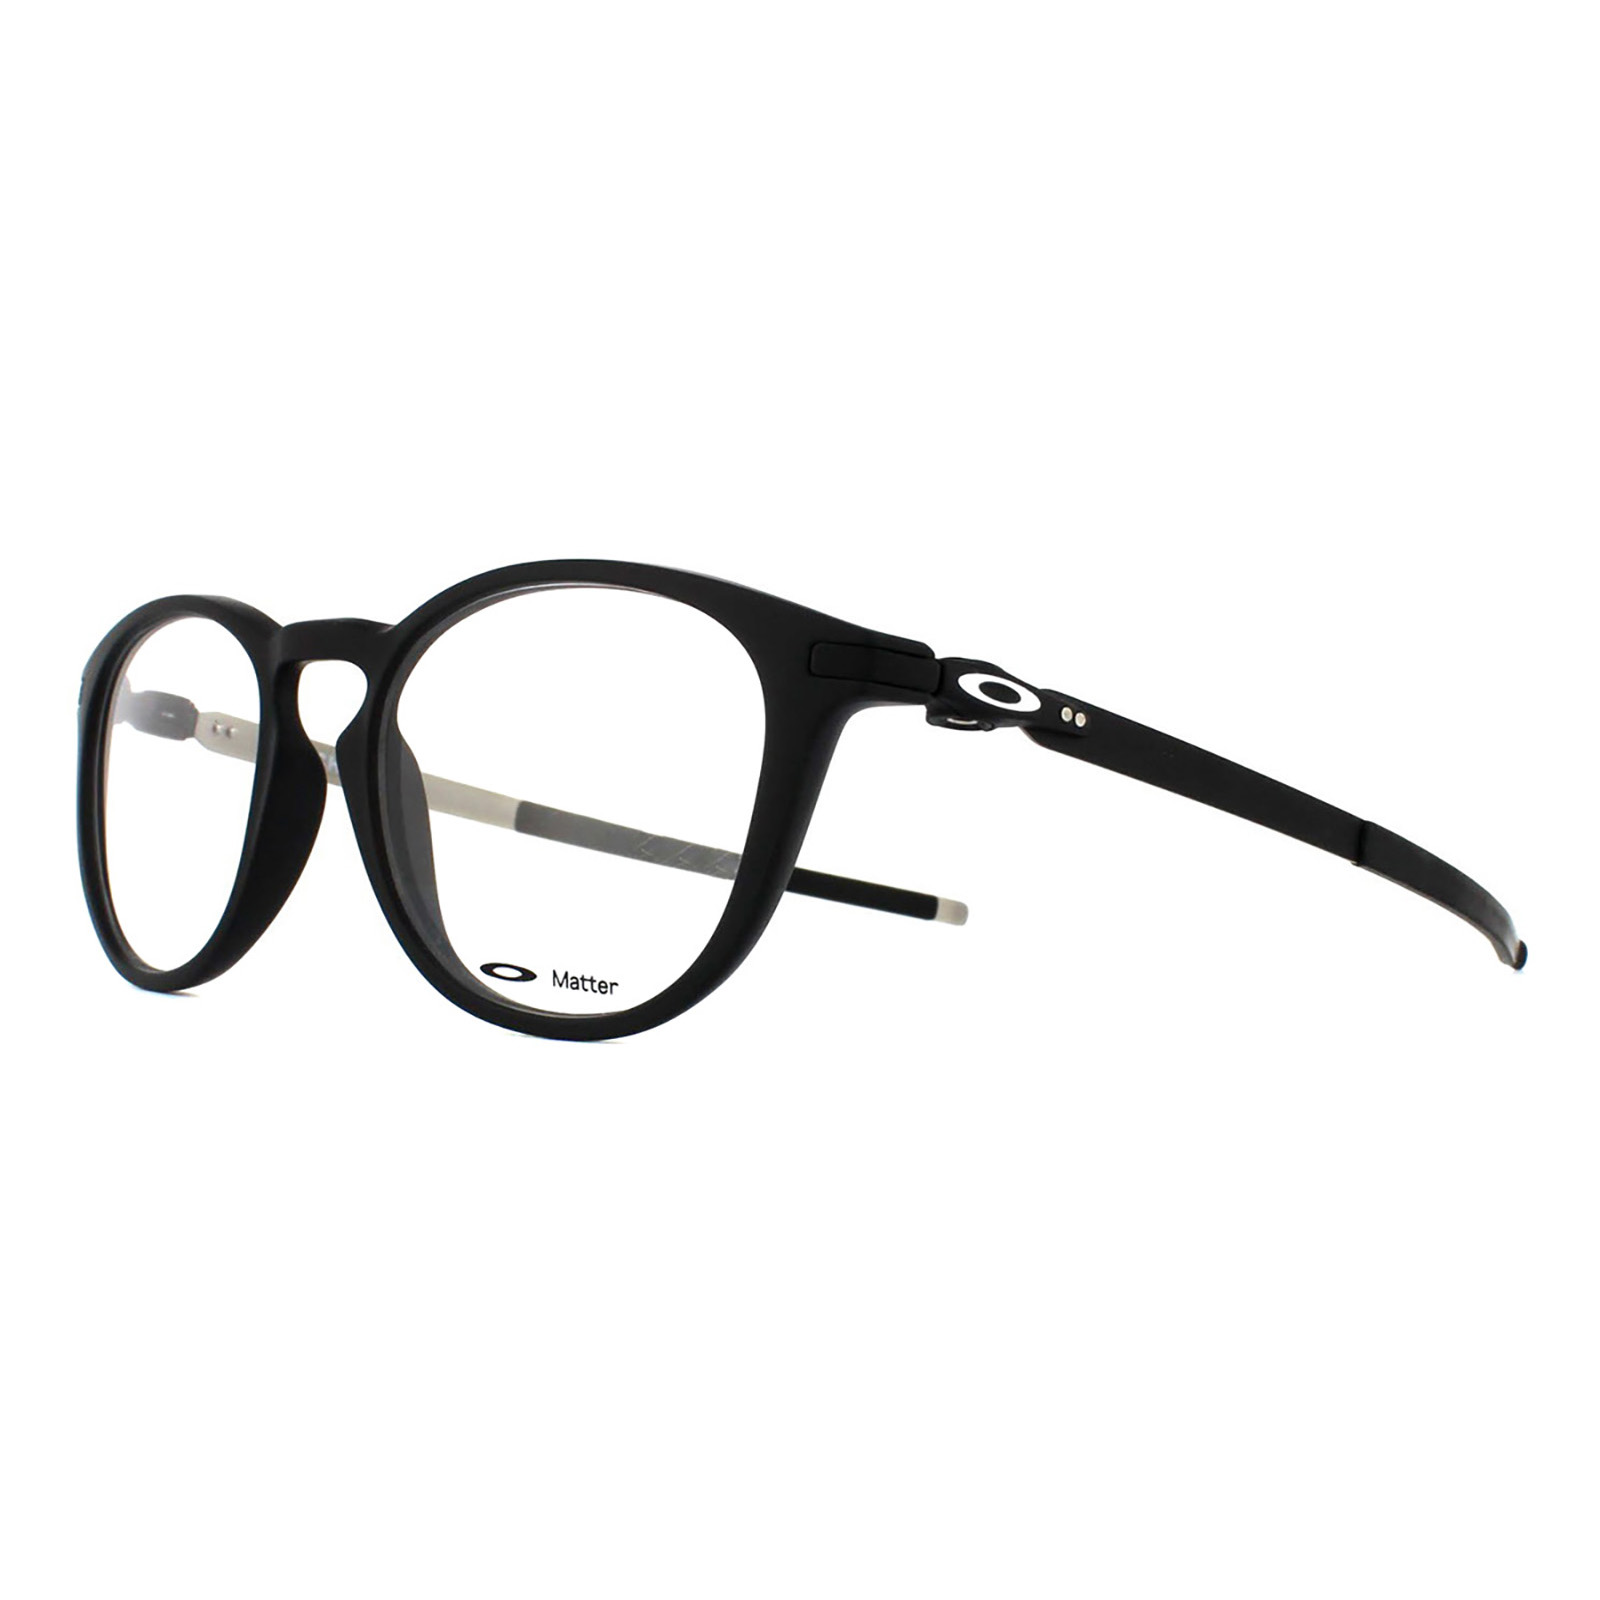 0f1f281158 Sentinel Oakley Glasses Frames Pitchman R OX8105-01 Satin Black on Matte  Silver 50mm